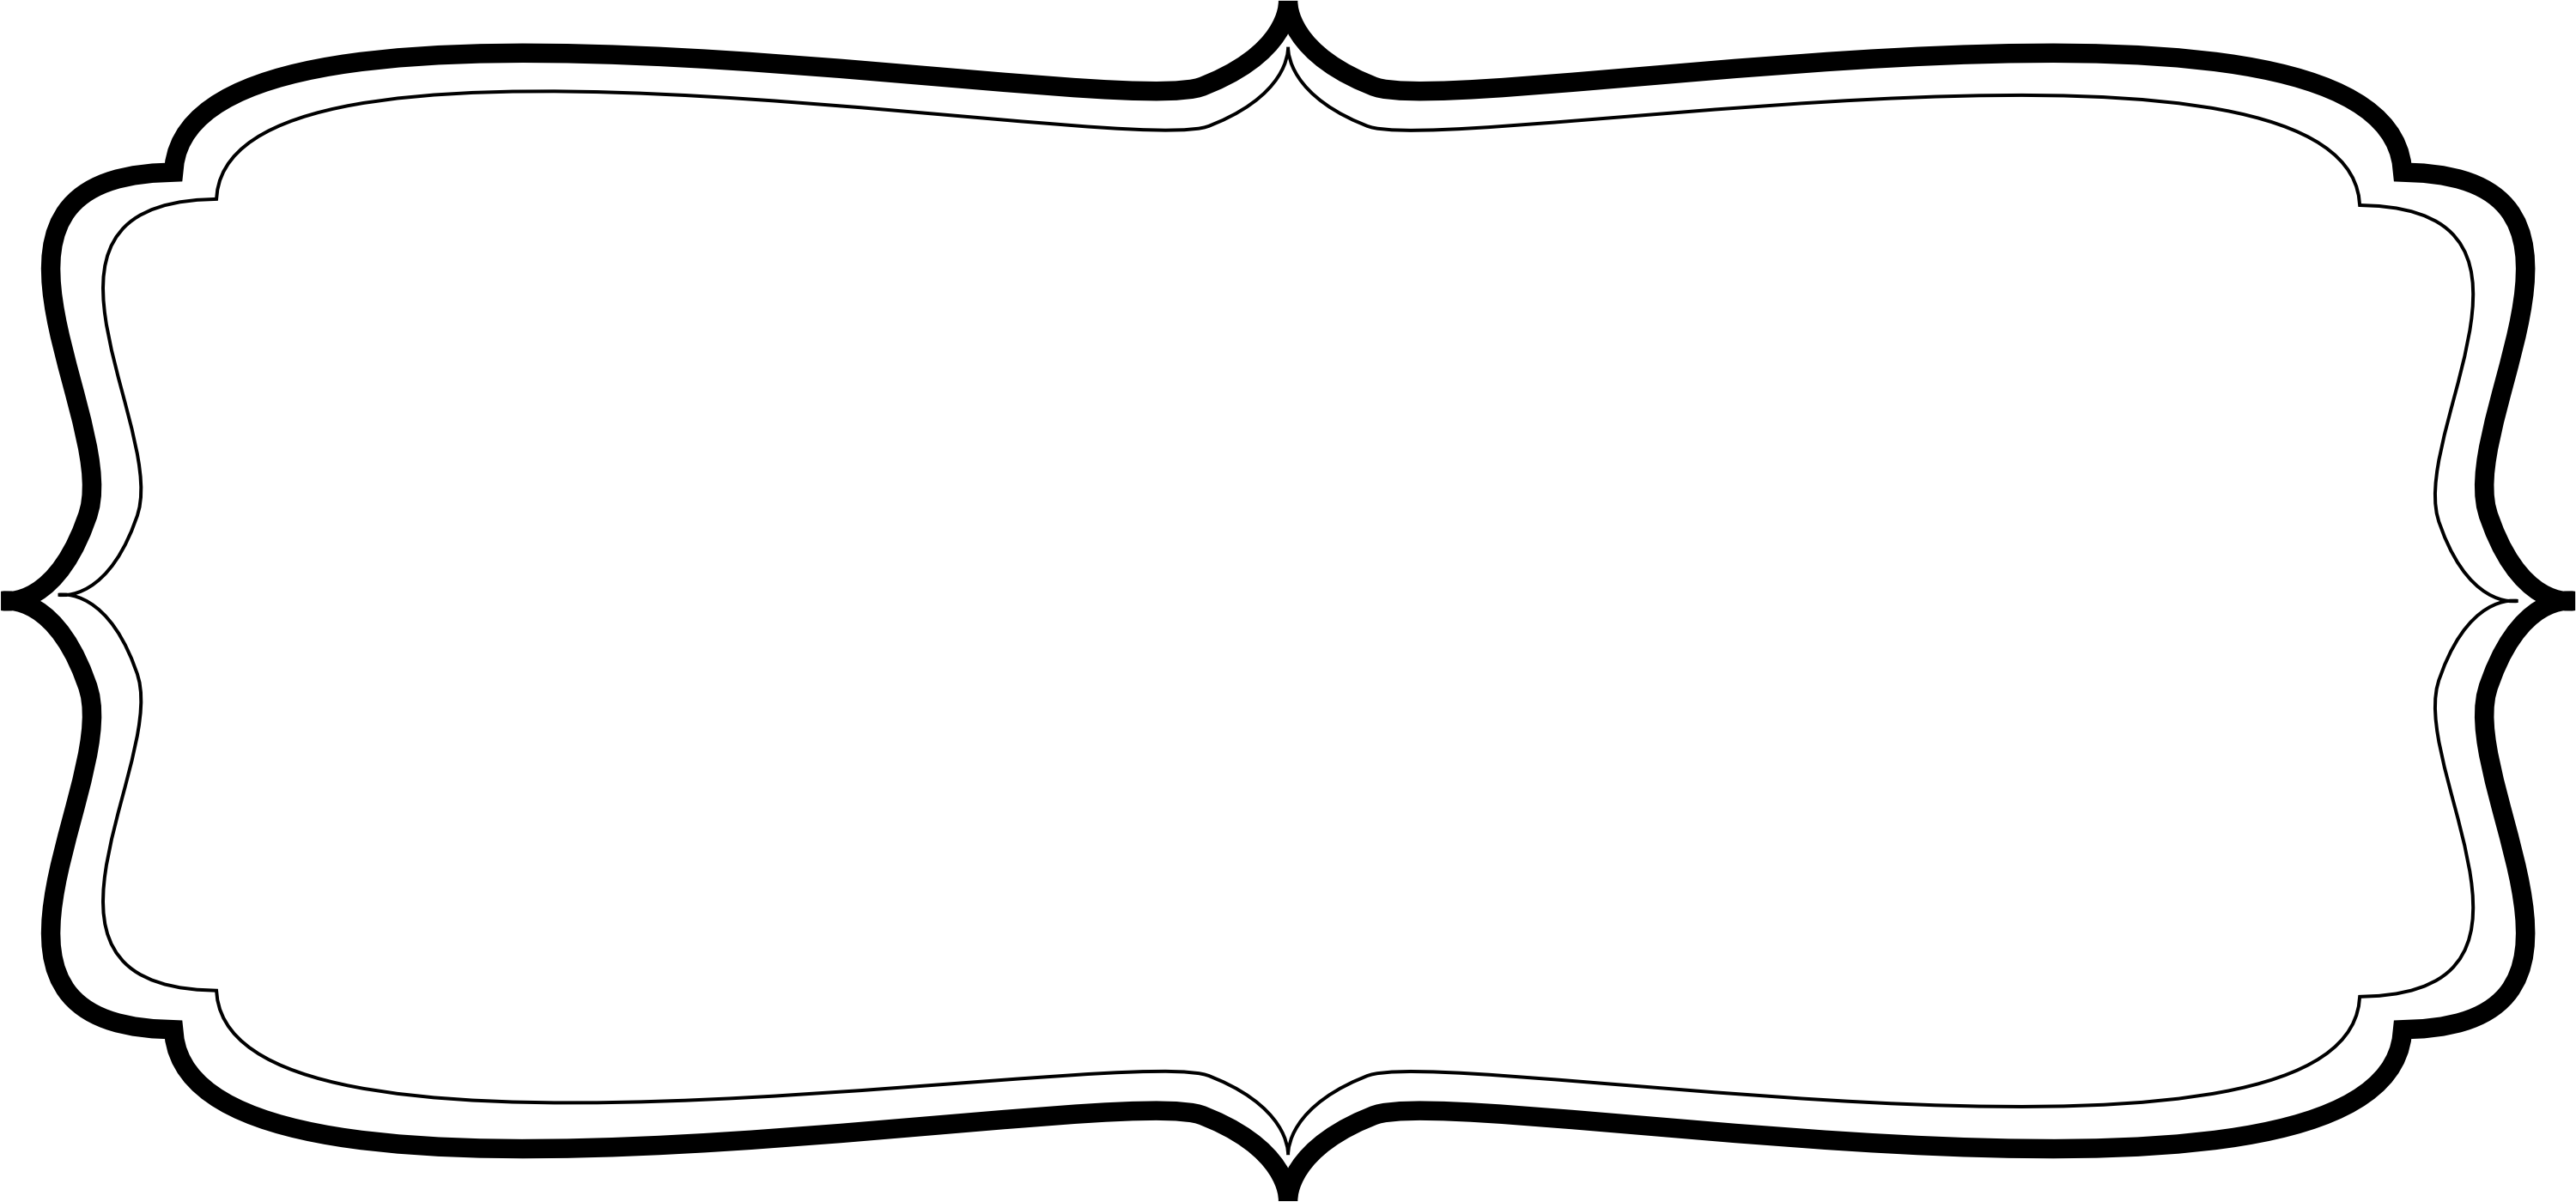 png black and white library Images of frames png. White label clipart